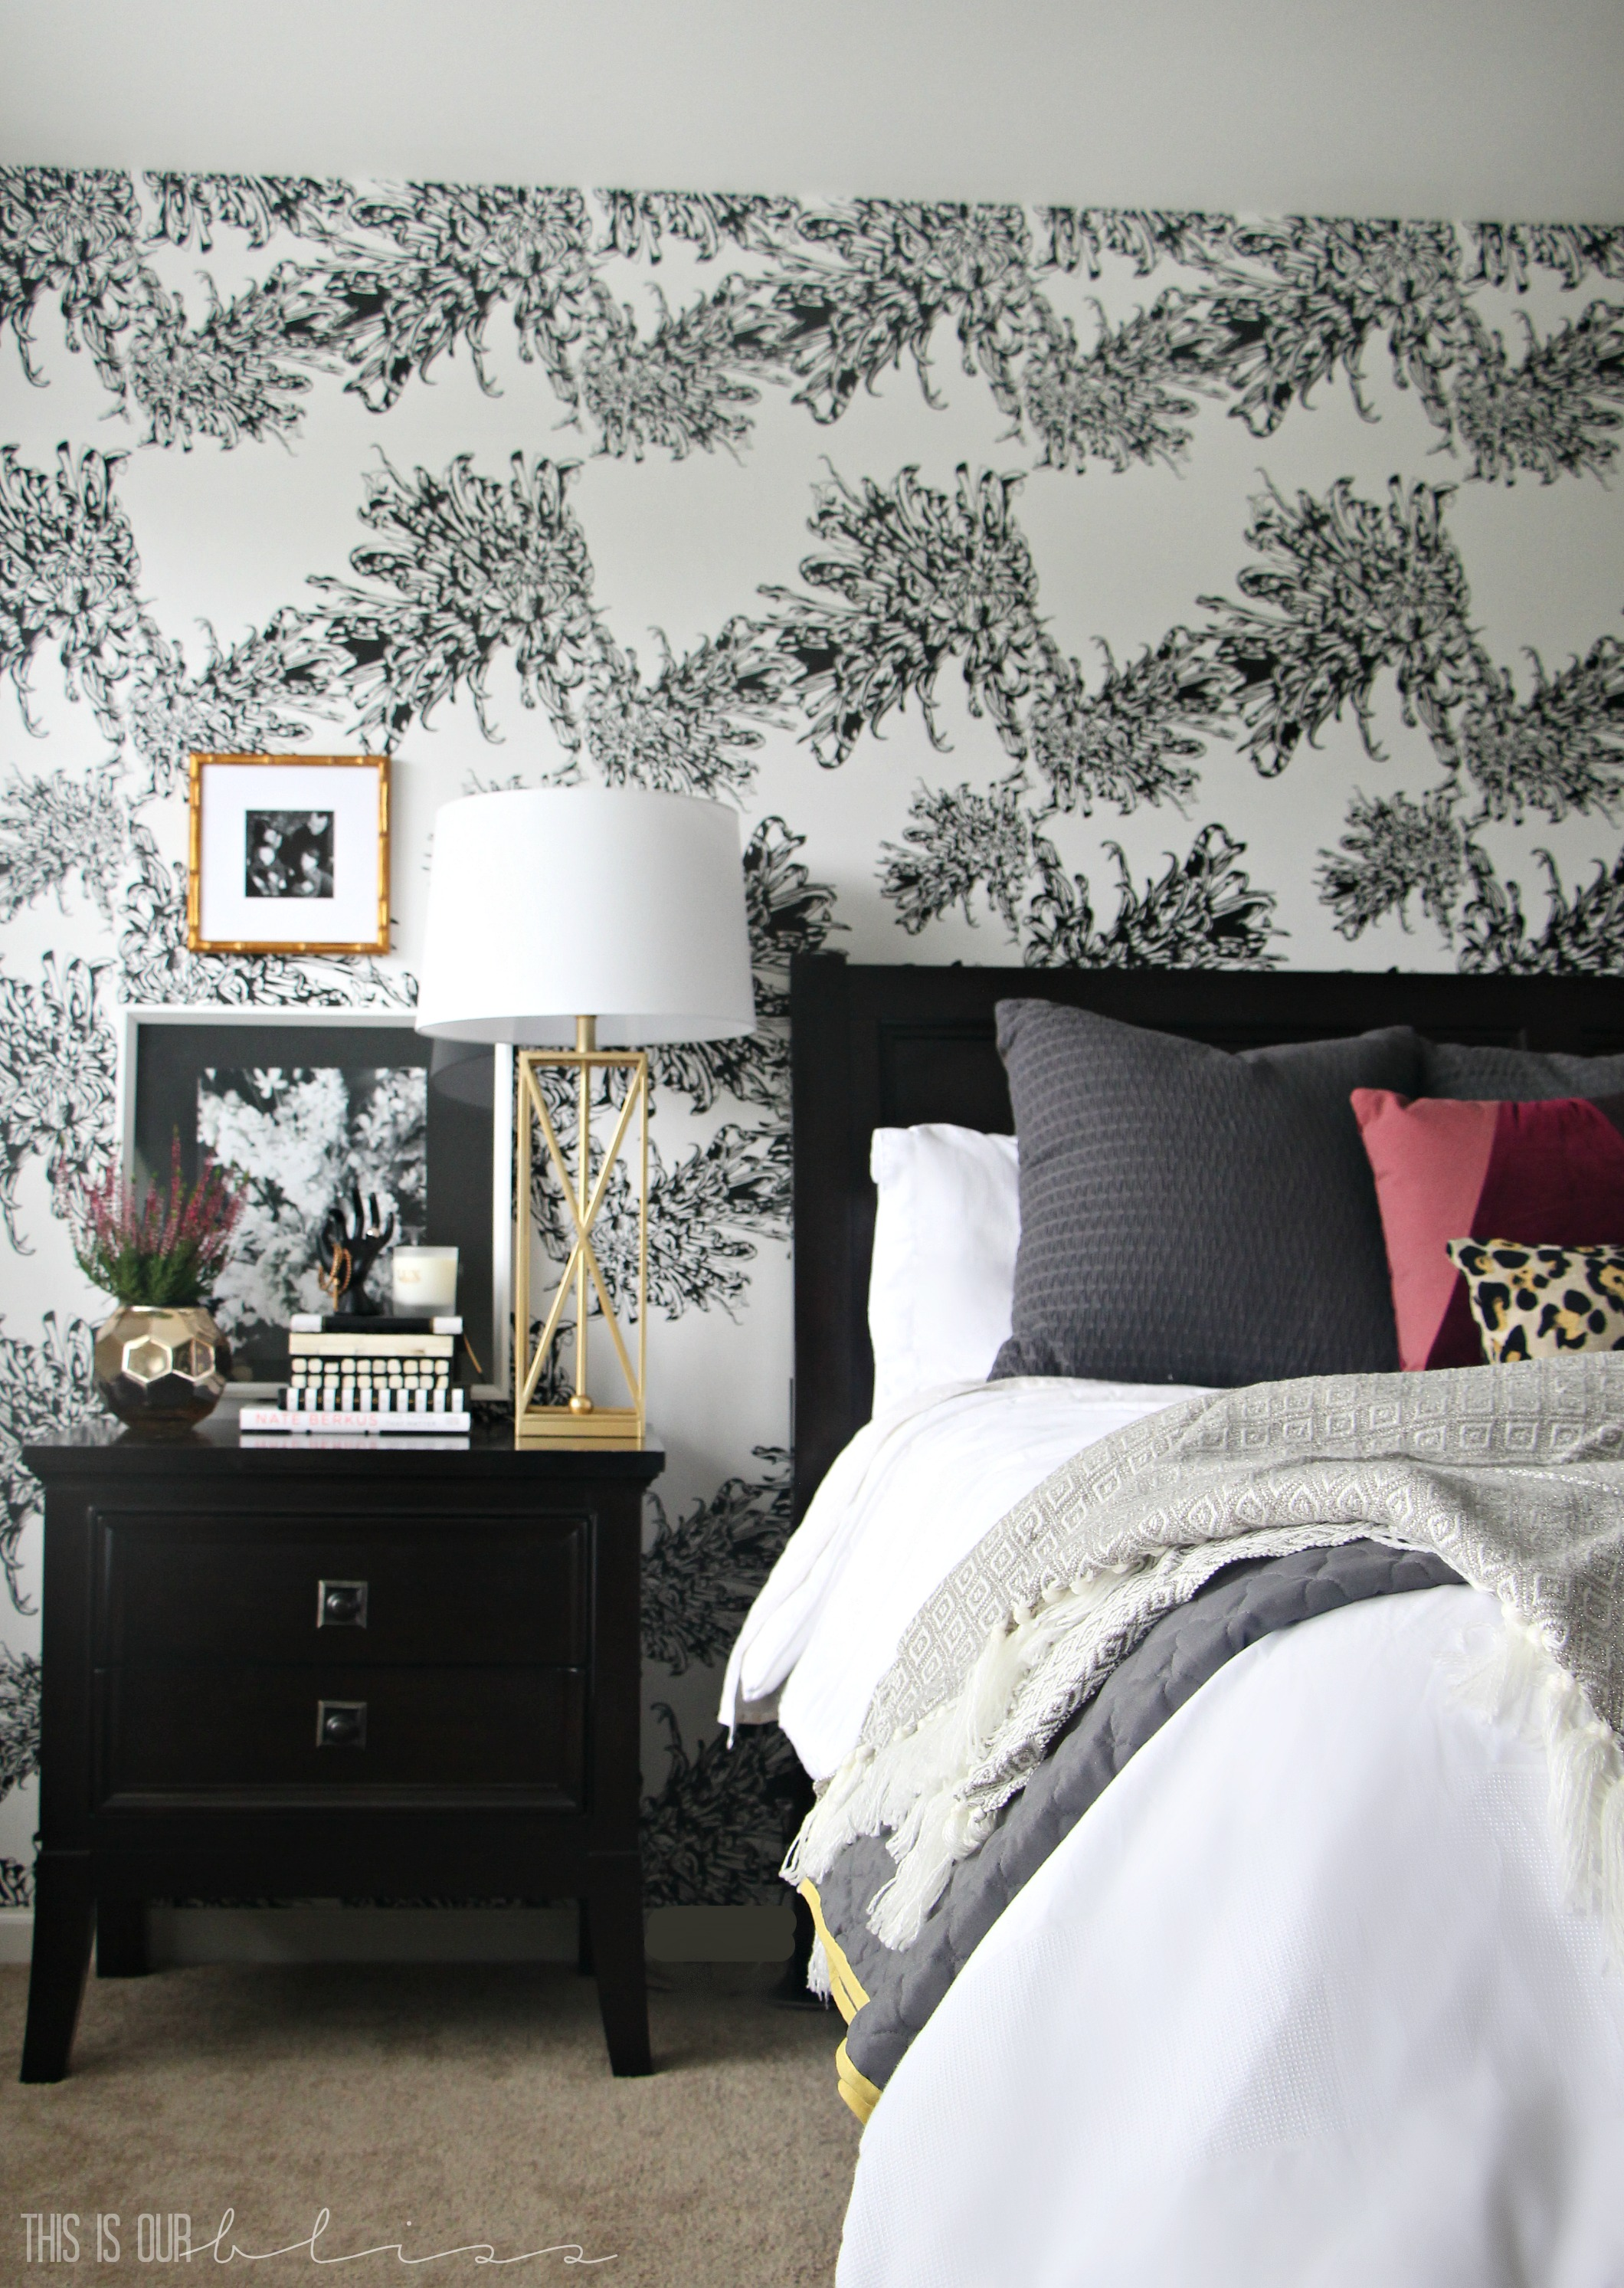 Bedroom Wallpapered Accent Wall | Glam Master Bedroom | This Is Our Bliss |  Www.